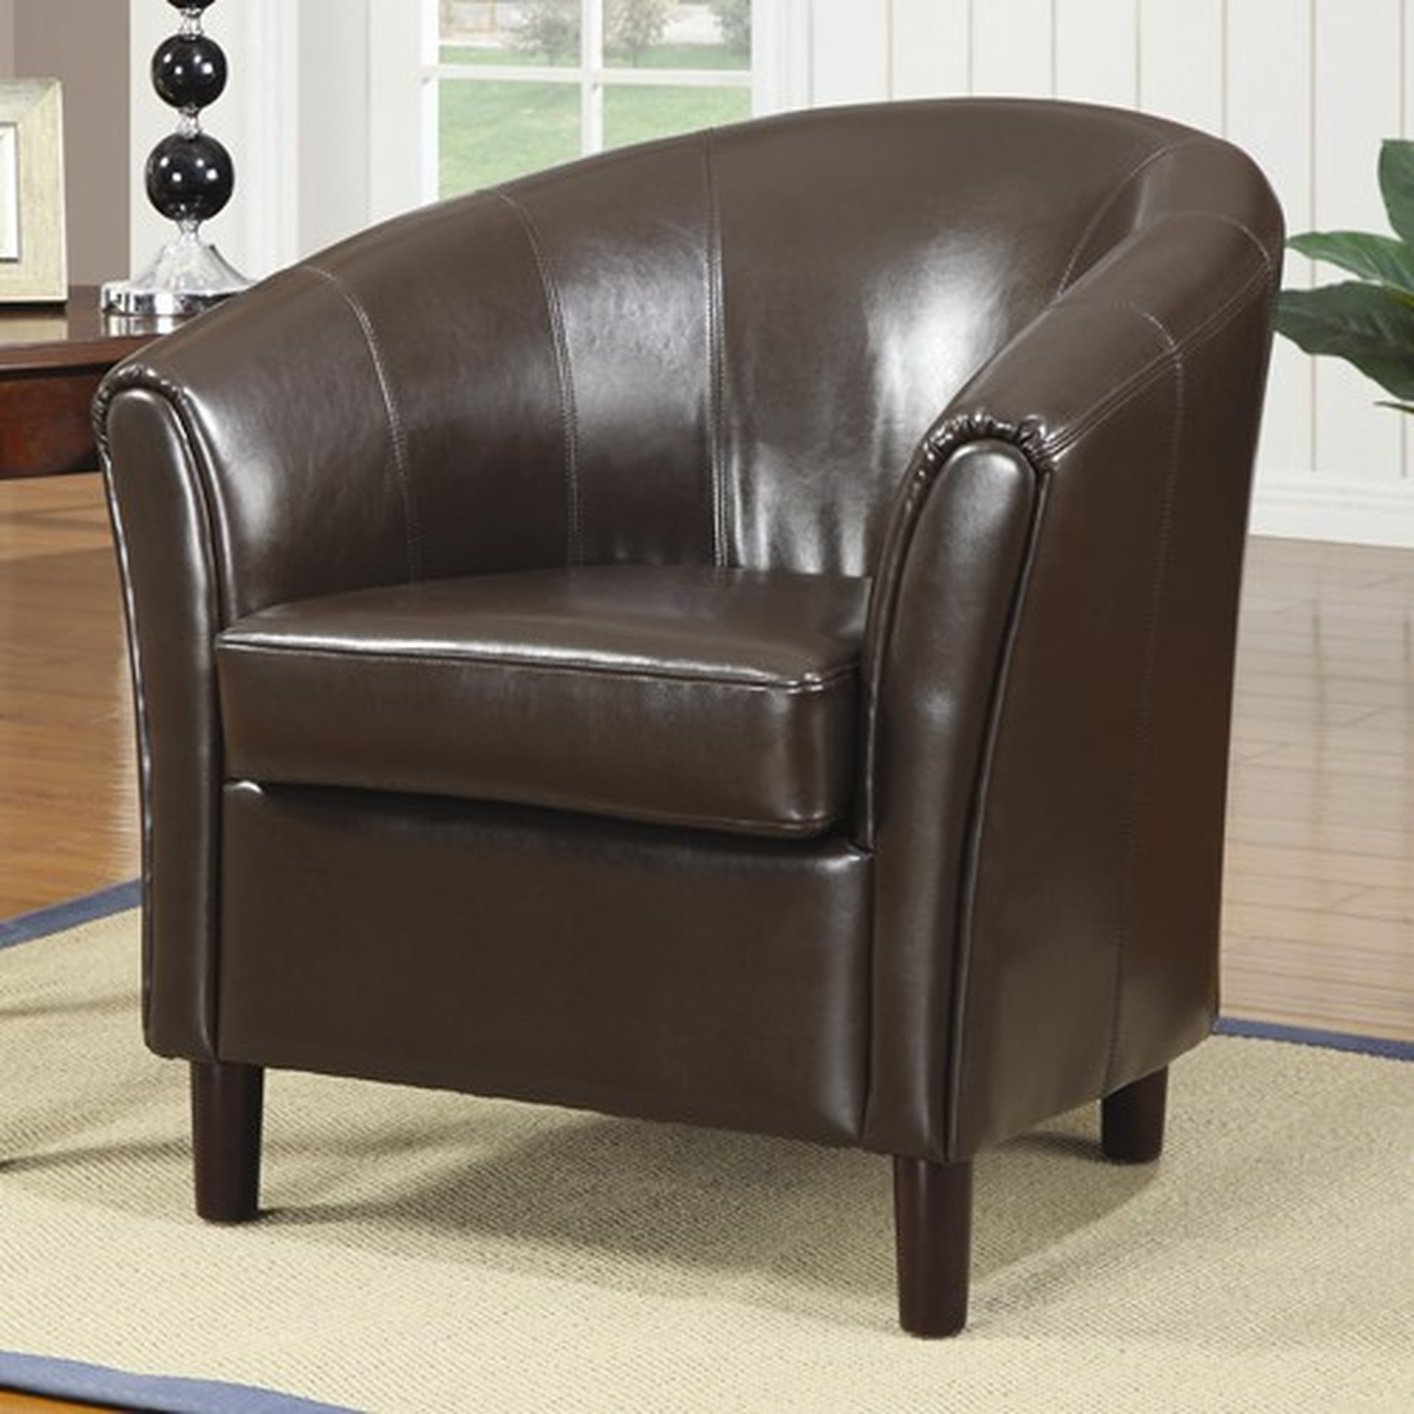 Brown Accent Chairs Brown Leather Accent Chair Steal A Sofa Furniture Outlet